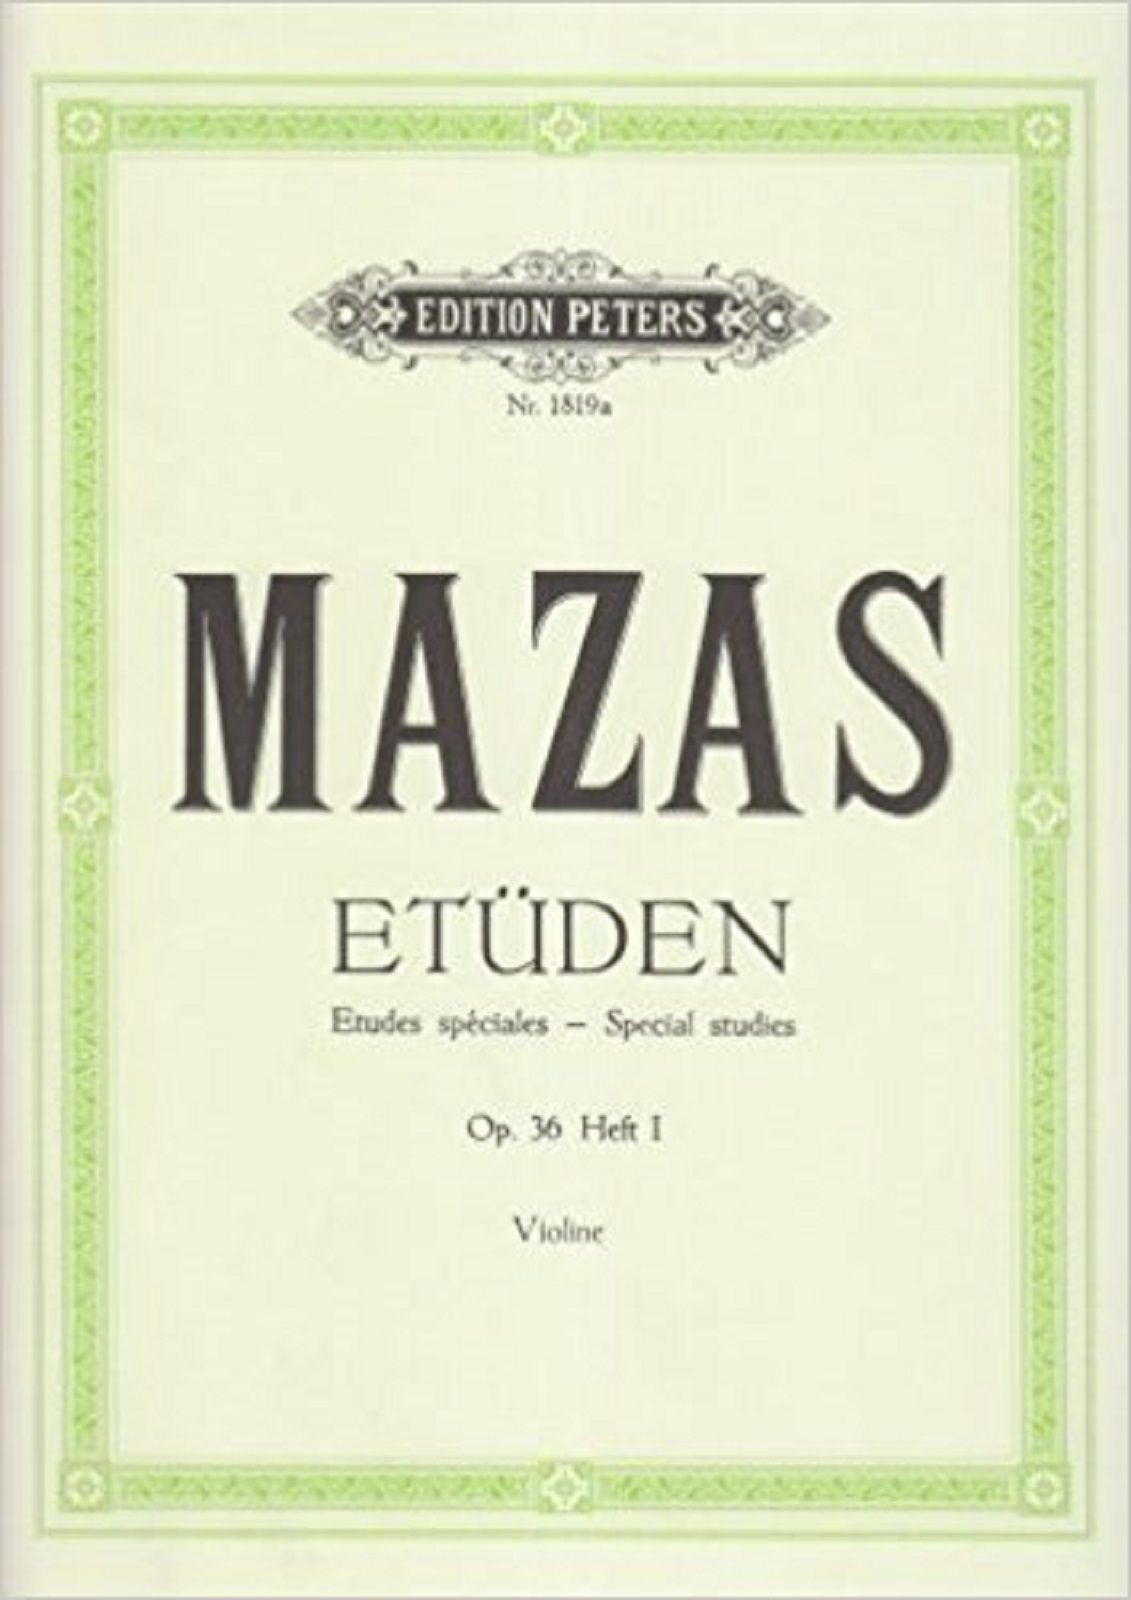 Mazas Violin Special Studies Op. 36 Book 1 Edition Peters S139